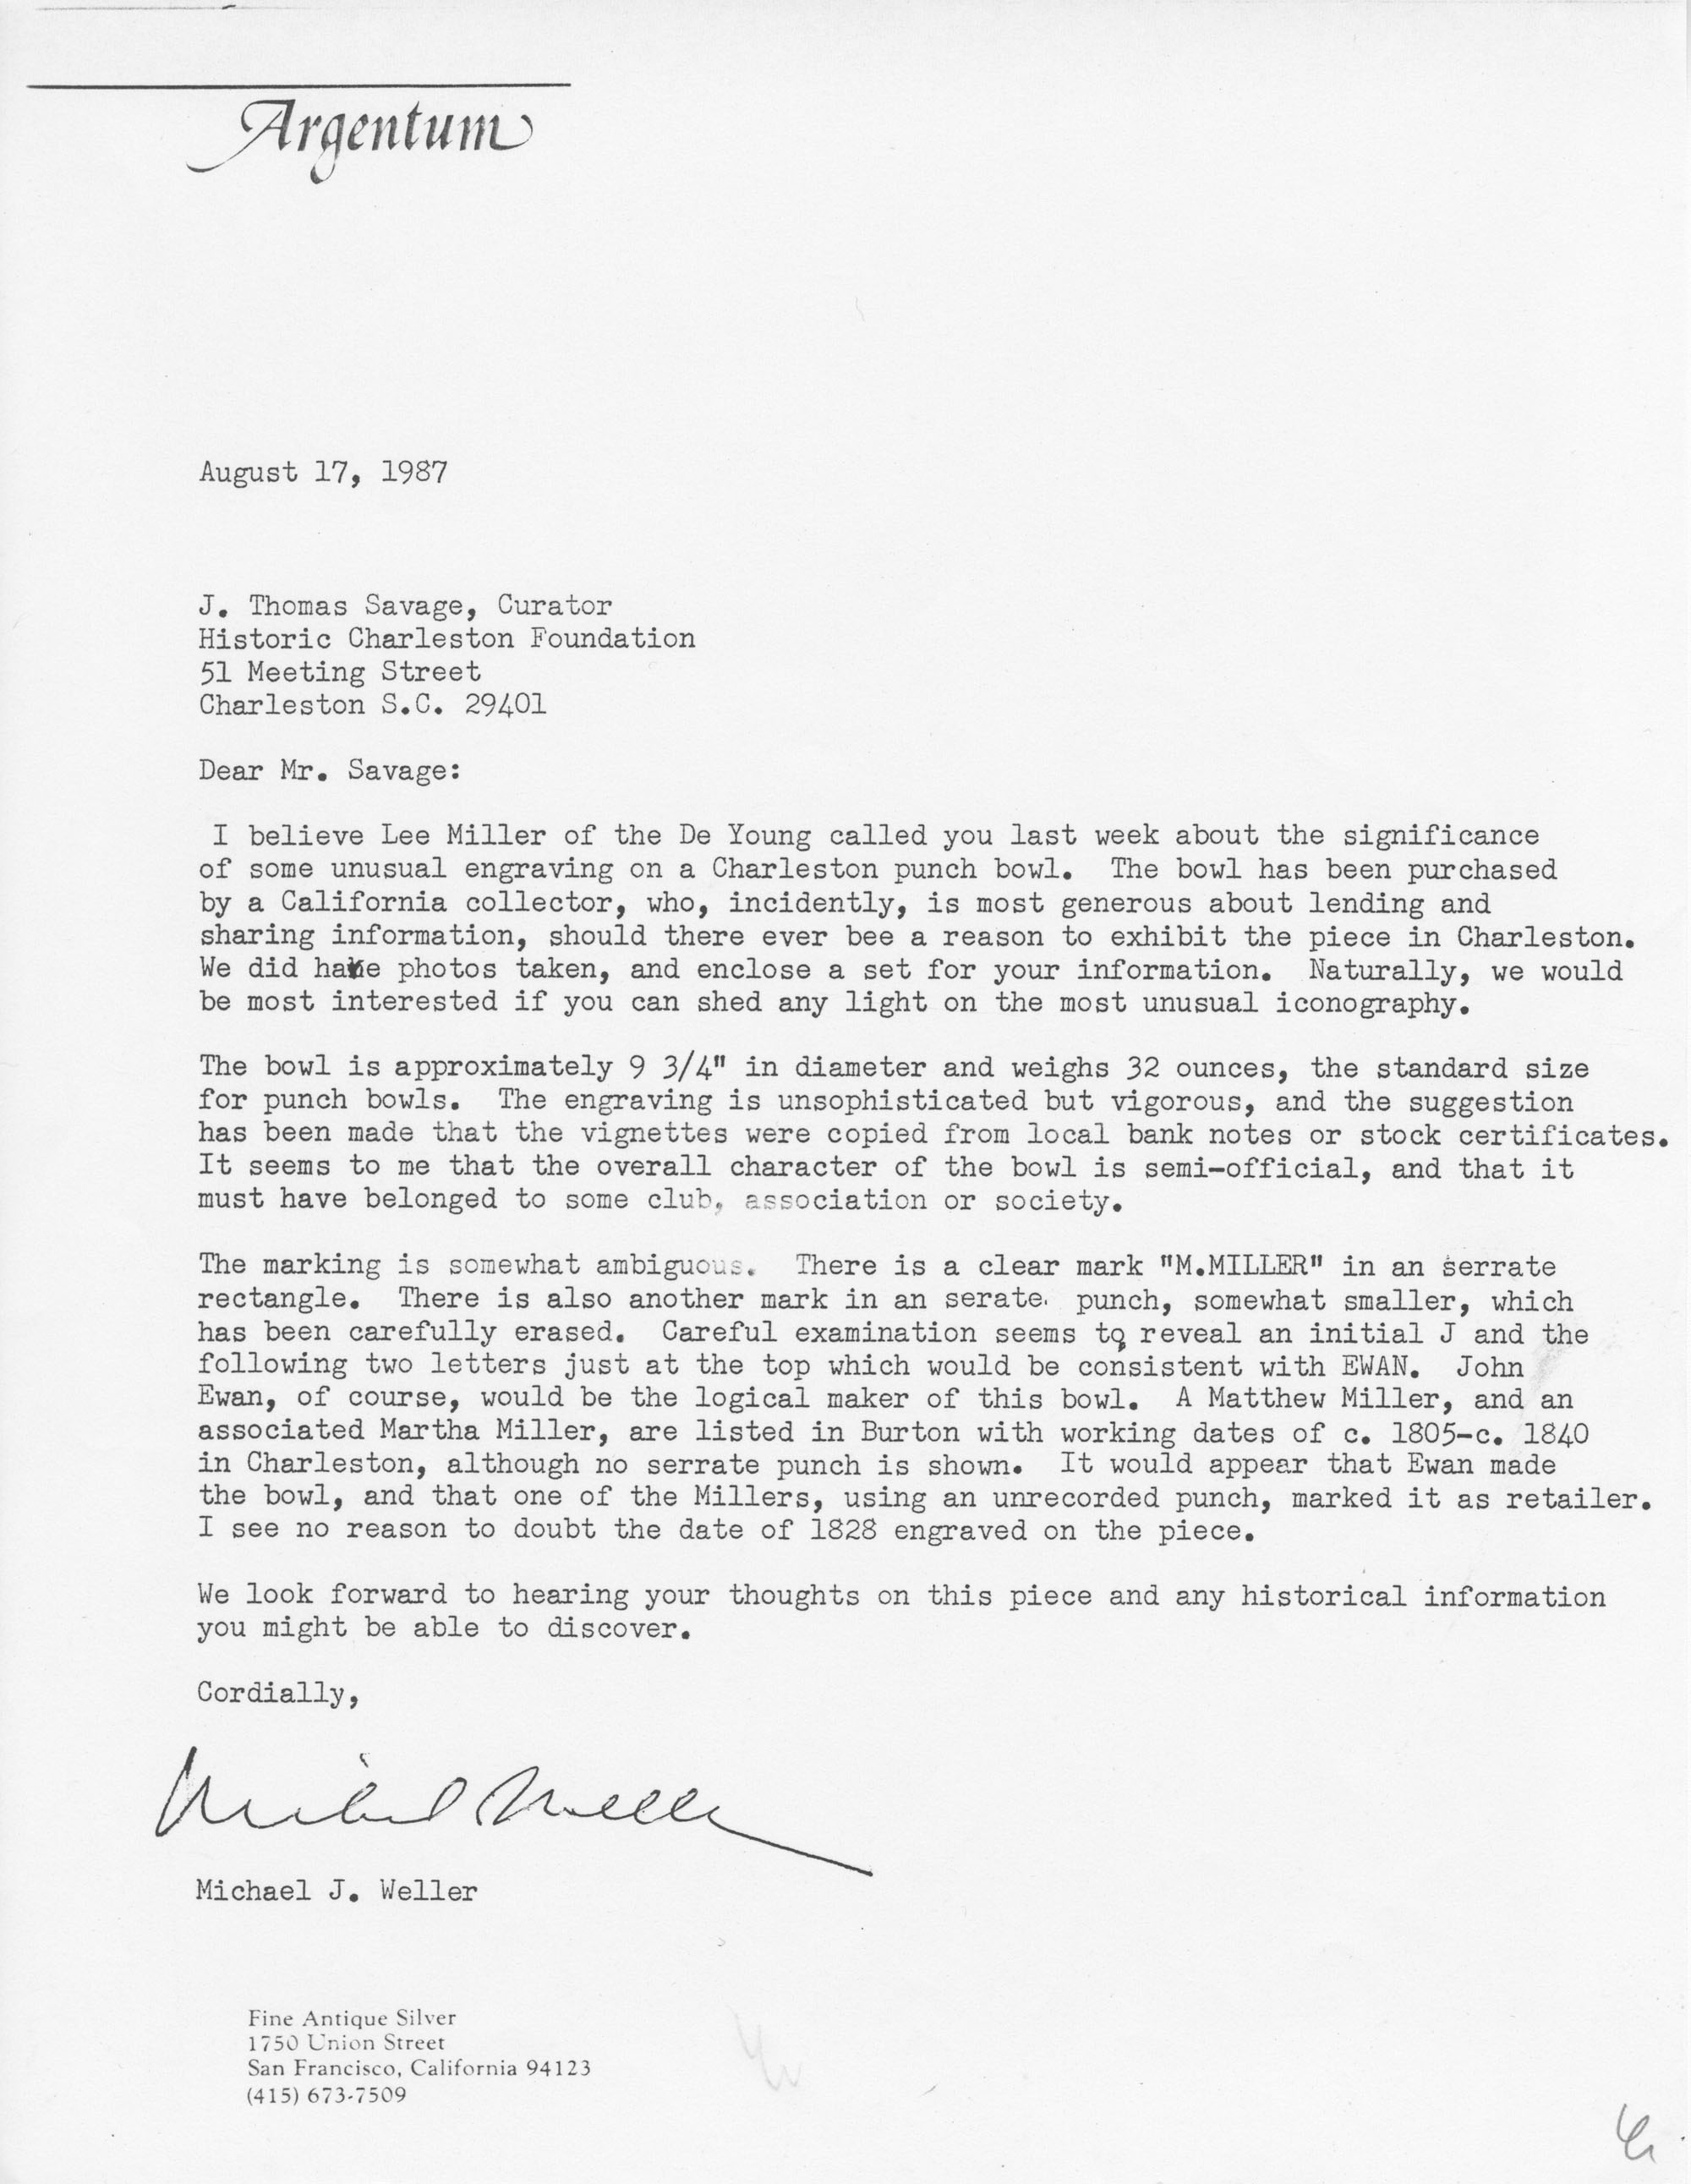 Letter Explaining the Engravings on a Punch Bowl